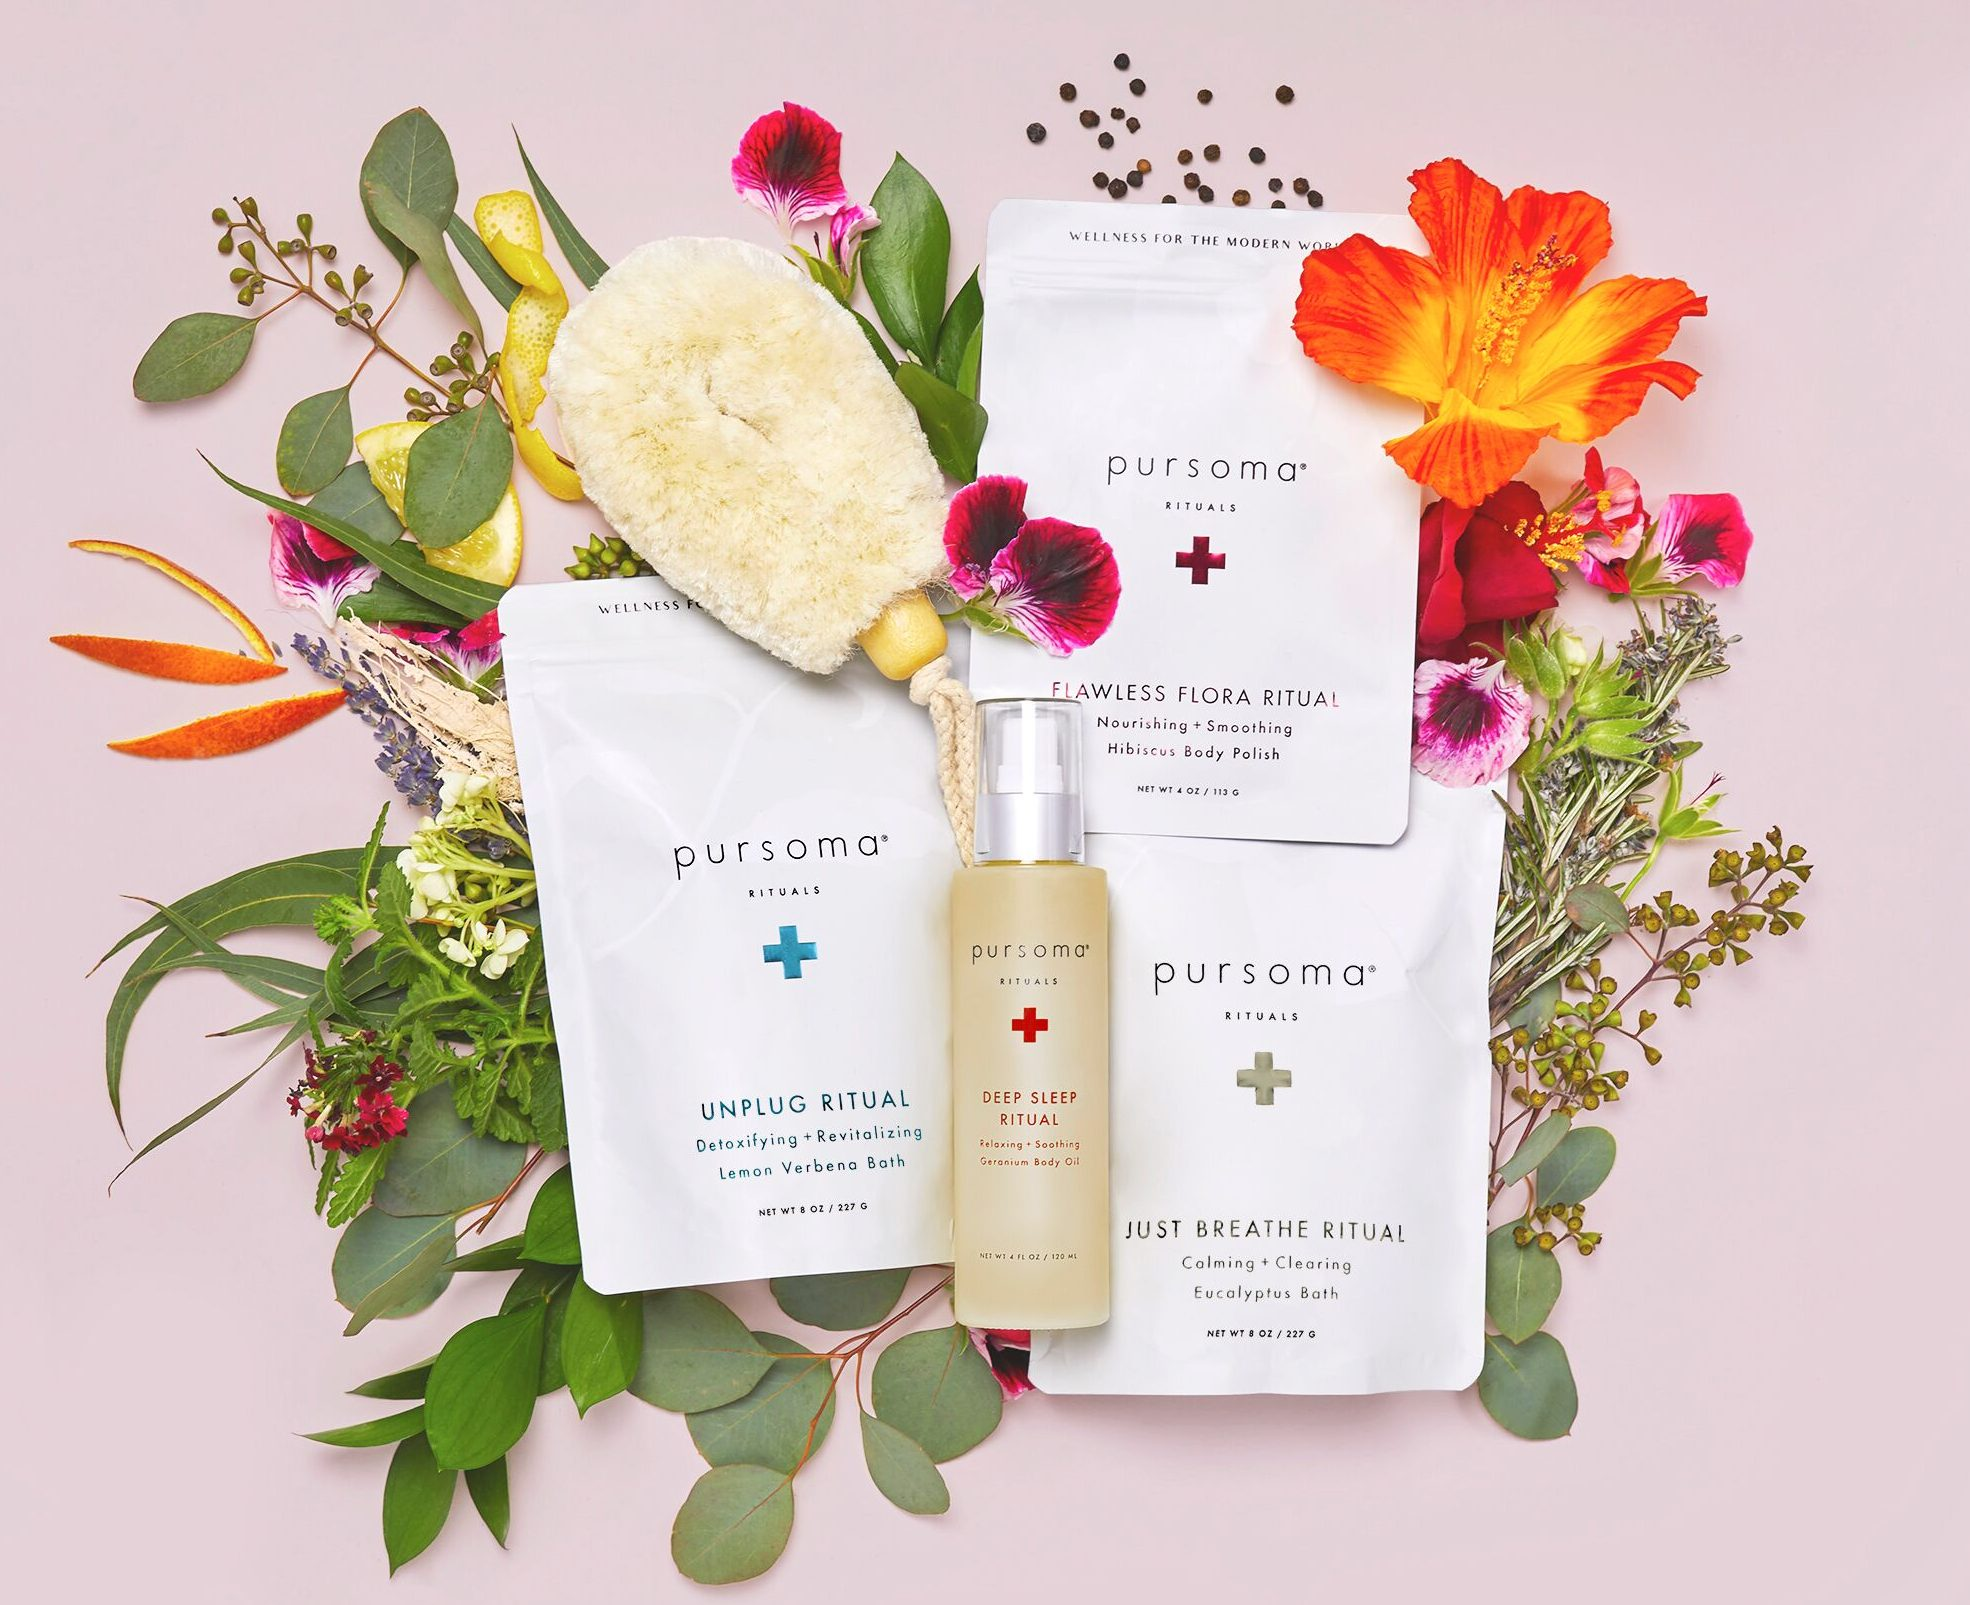 Pursoma Ulta Wellness launch